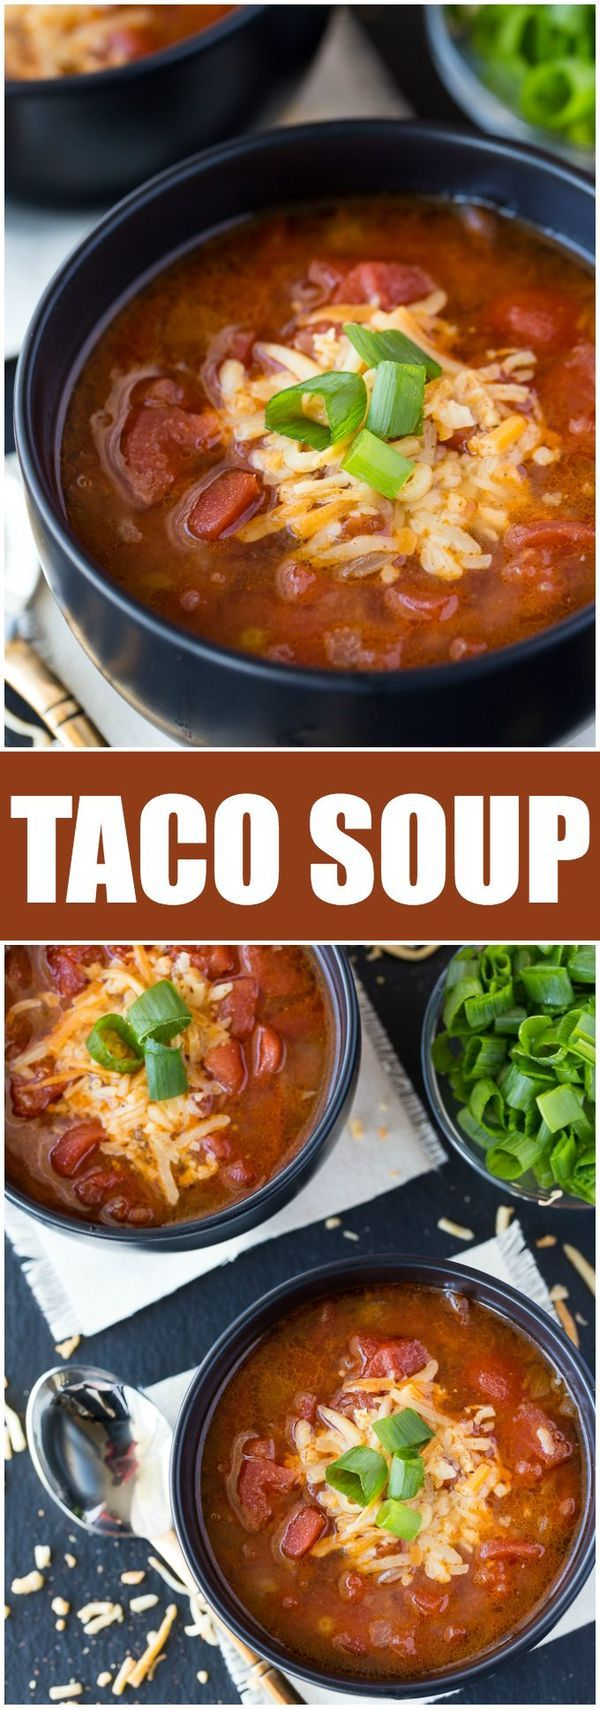 Taco Soup - A delicious, low carb meal with all the great flavors of tacos we love!